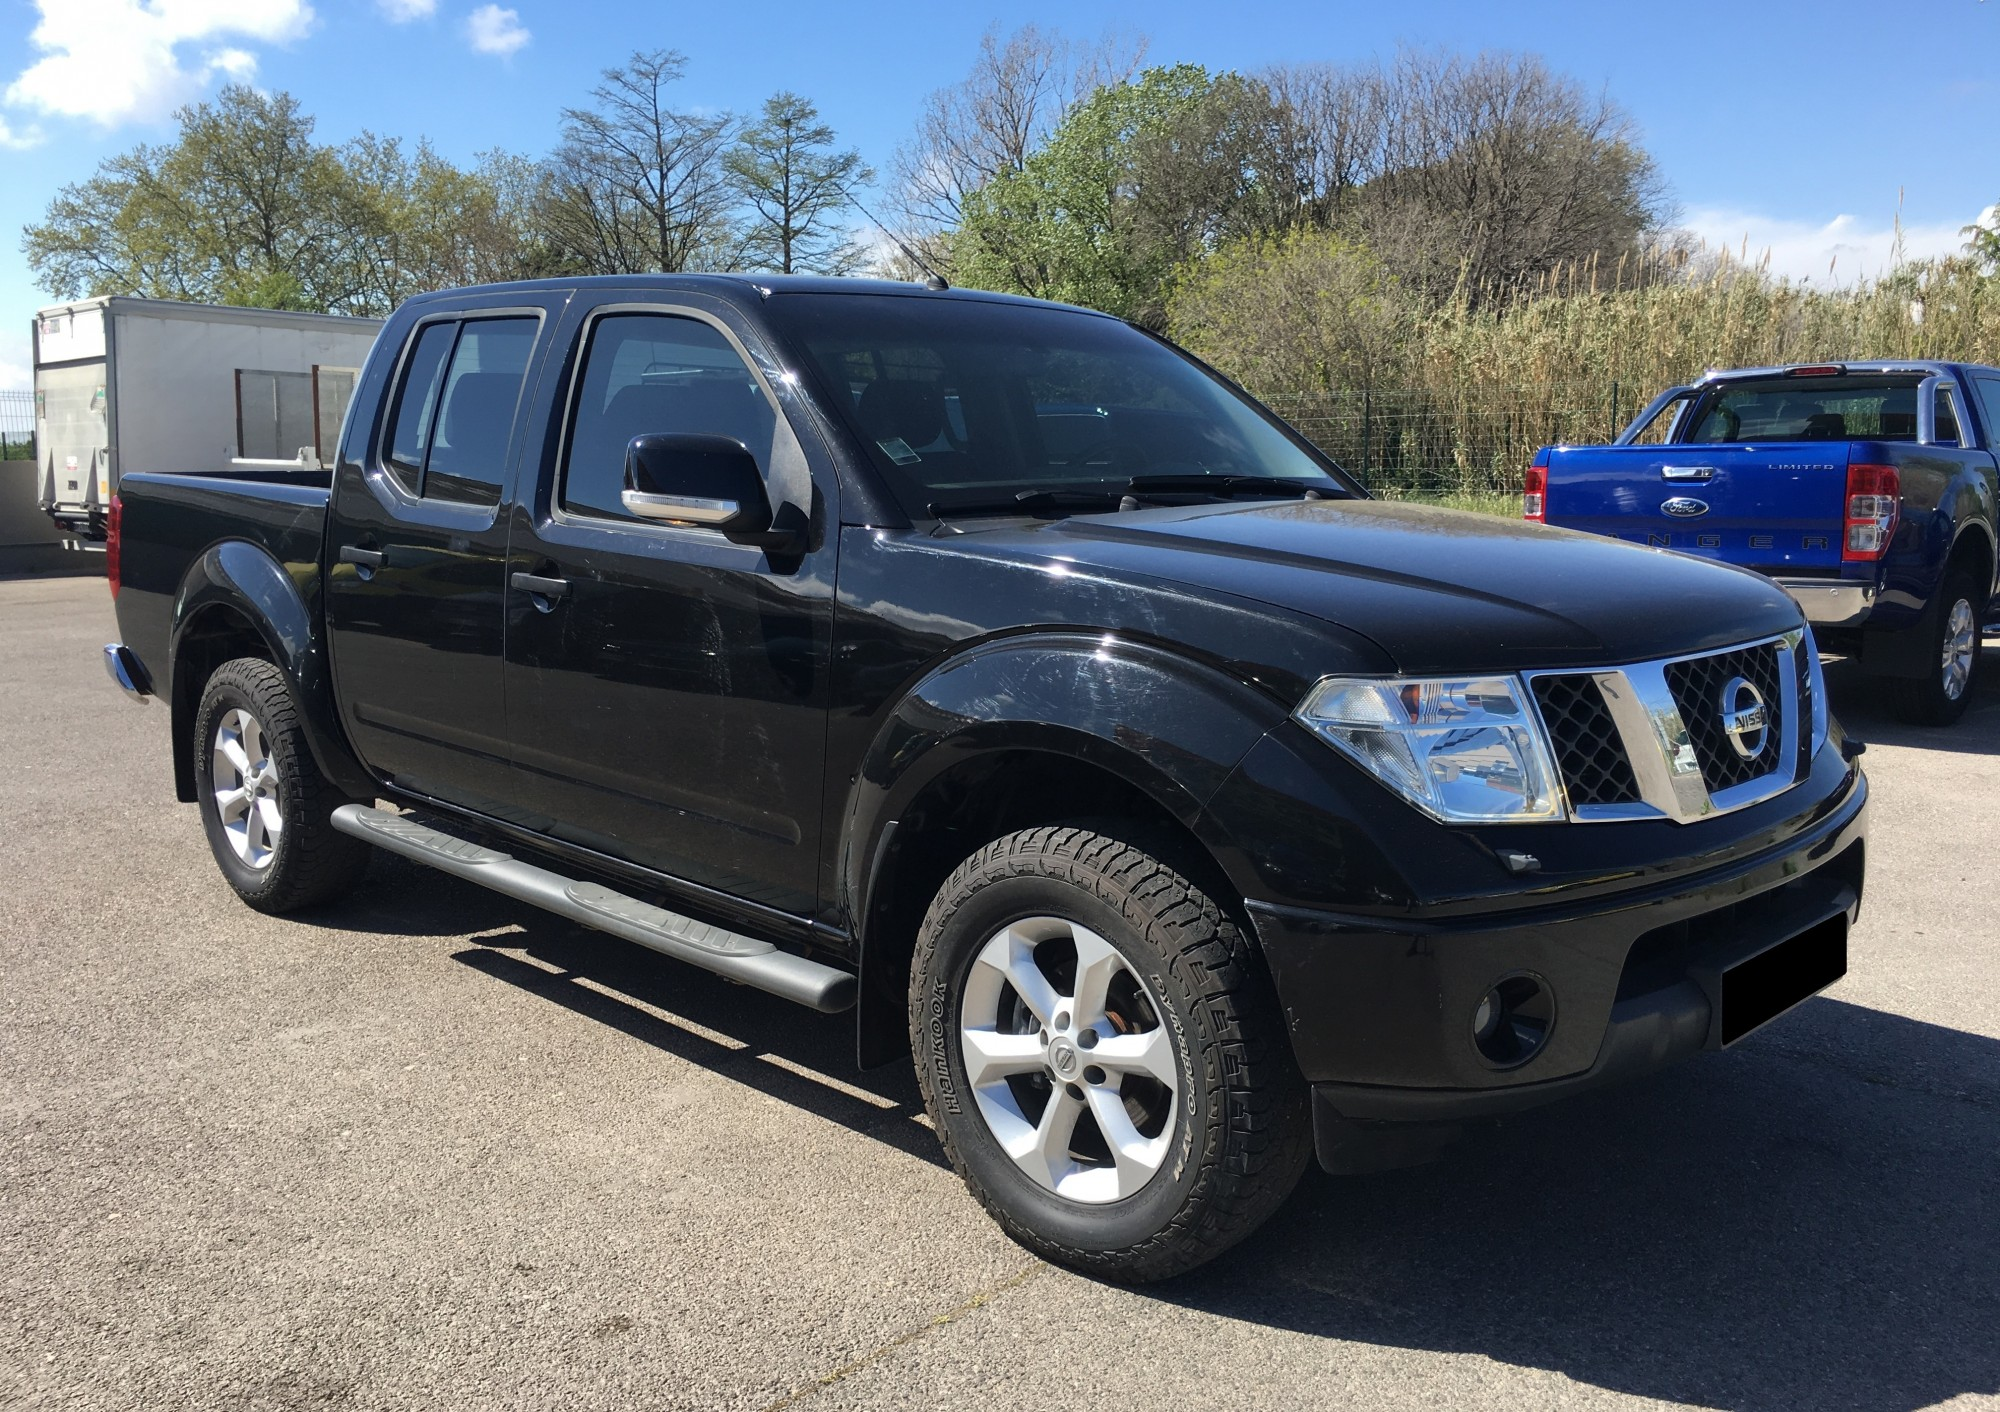 nissan navara 2 5 dci 190 ch 4x4 double cabine xe de 2013 voir dans les bouches du rh ne. Black Bedroom Furniture Sets. Home Design Ideas